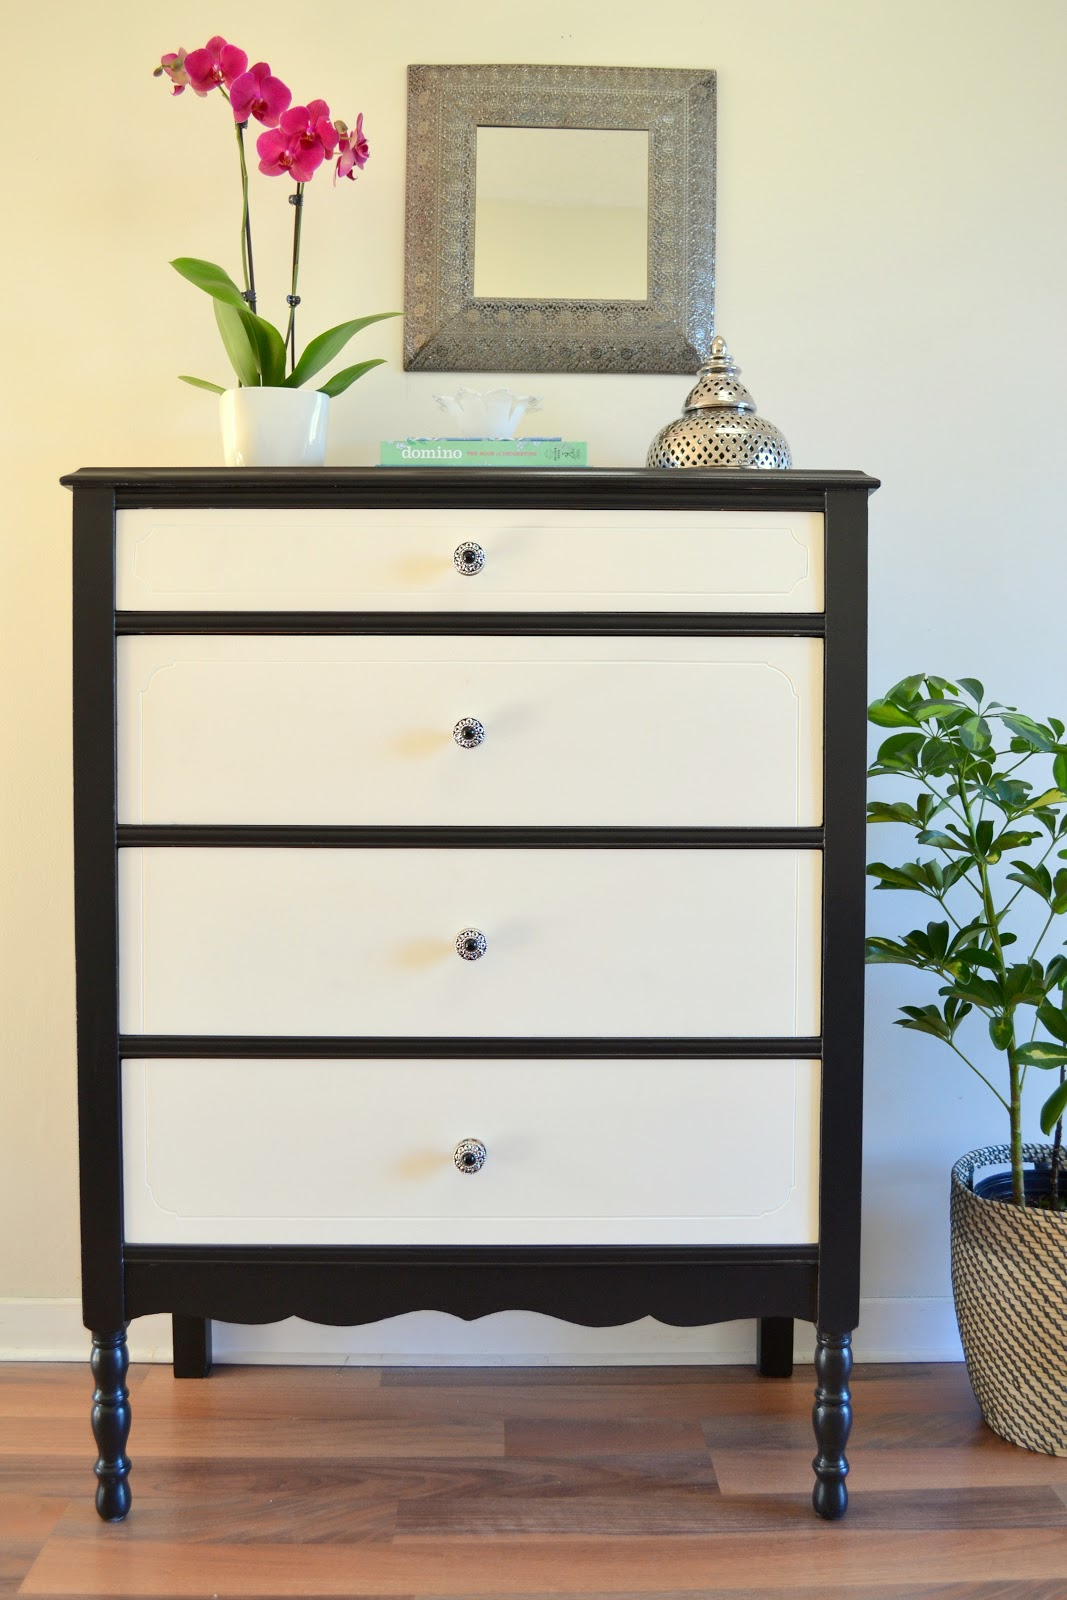 Honey Sweet Home The Tuxedo Dresser A Black & White